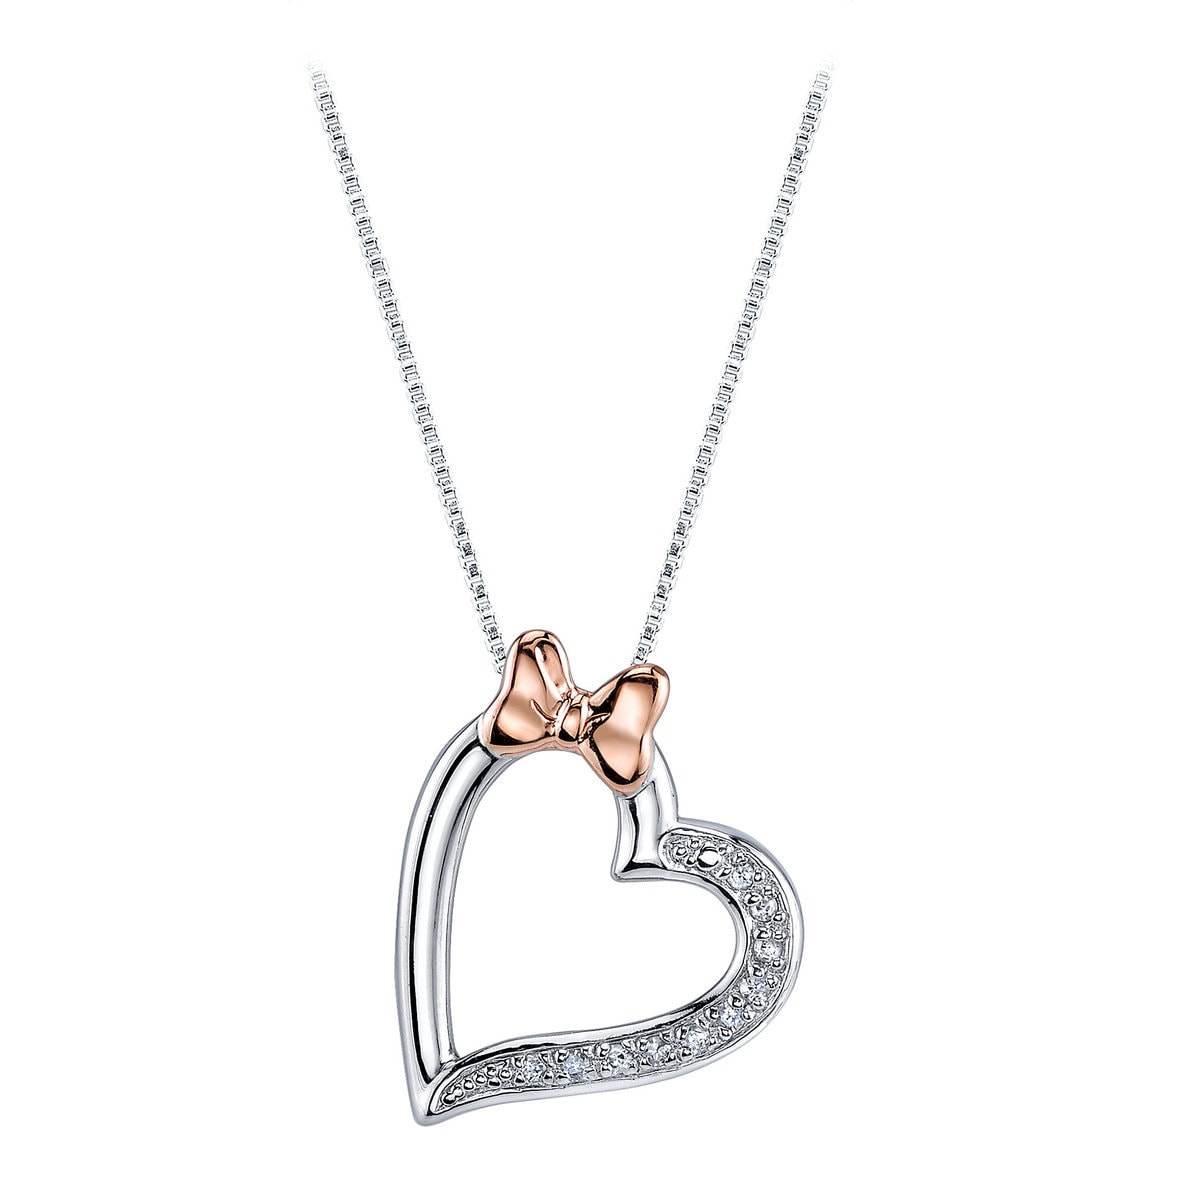 shopdisney diamond necklace heart mouse image minnie